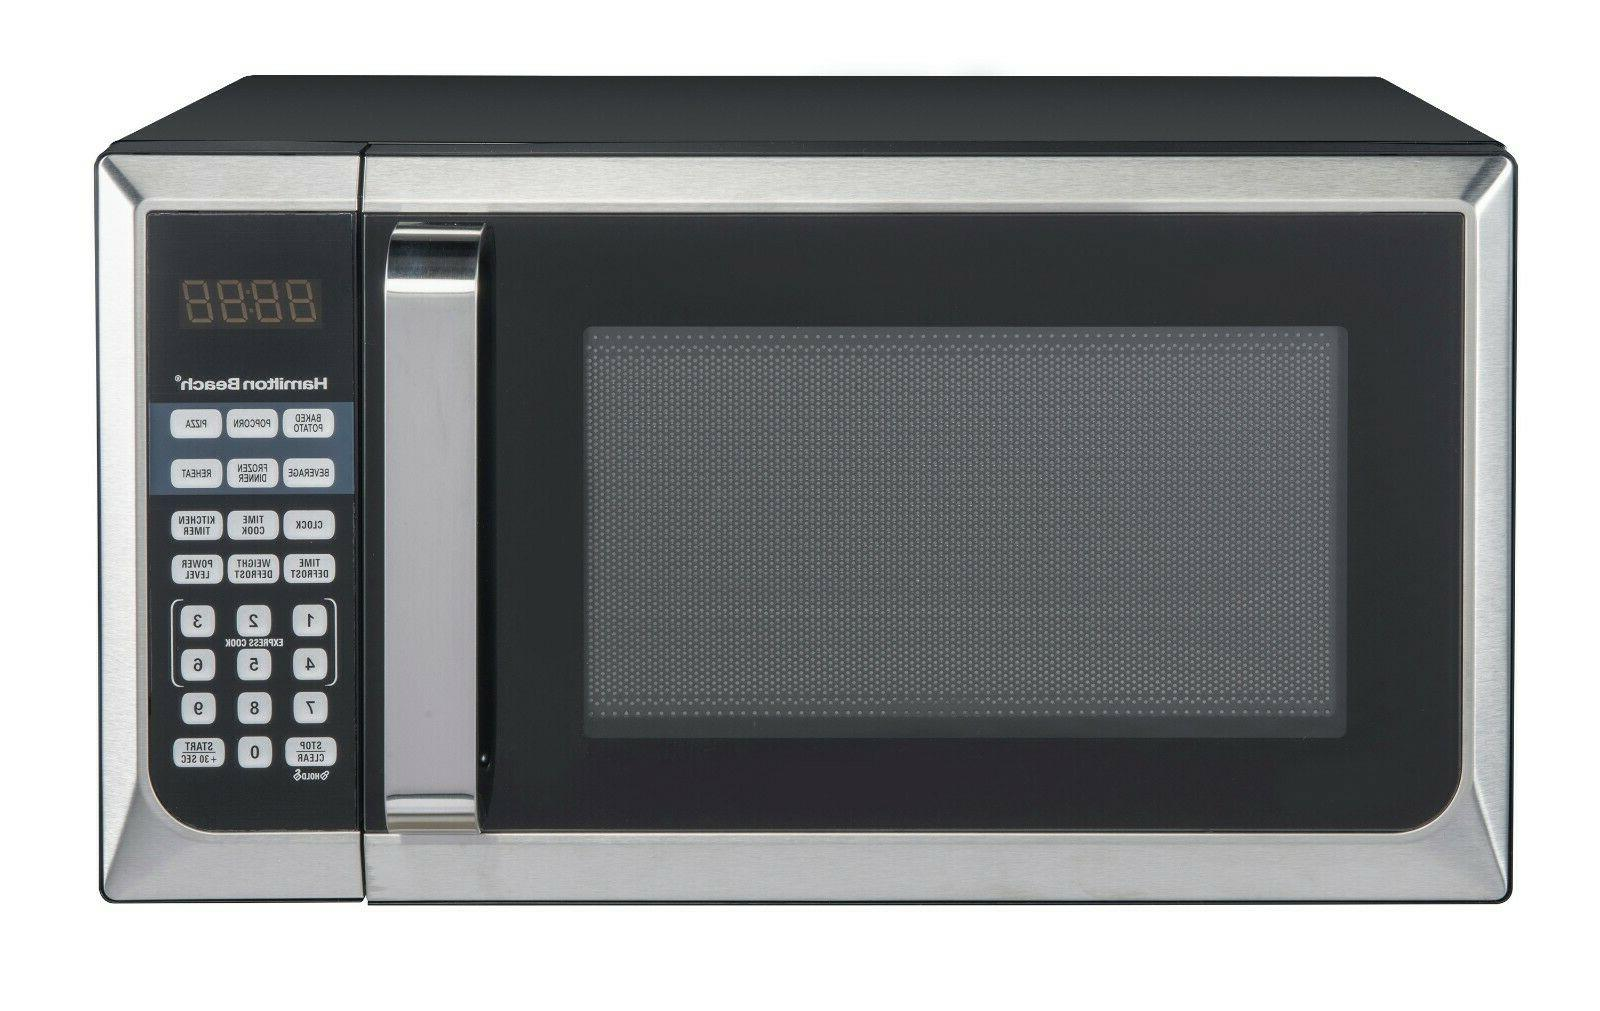 Microwave Oven Stainless Steel Countertop 0 9 Cu Ft Beach Ha